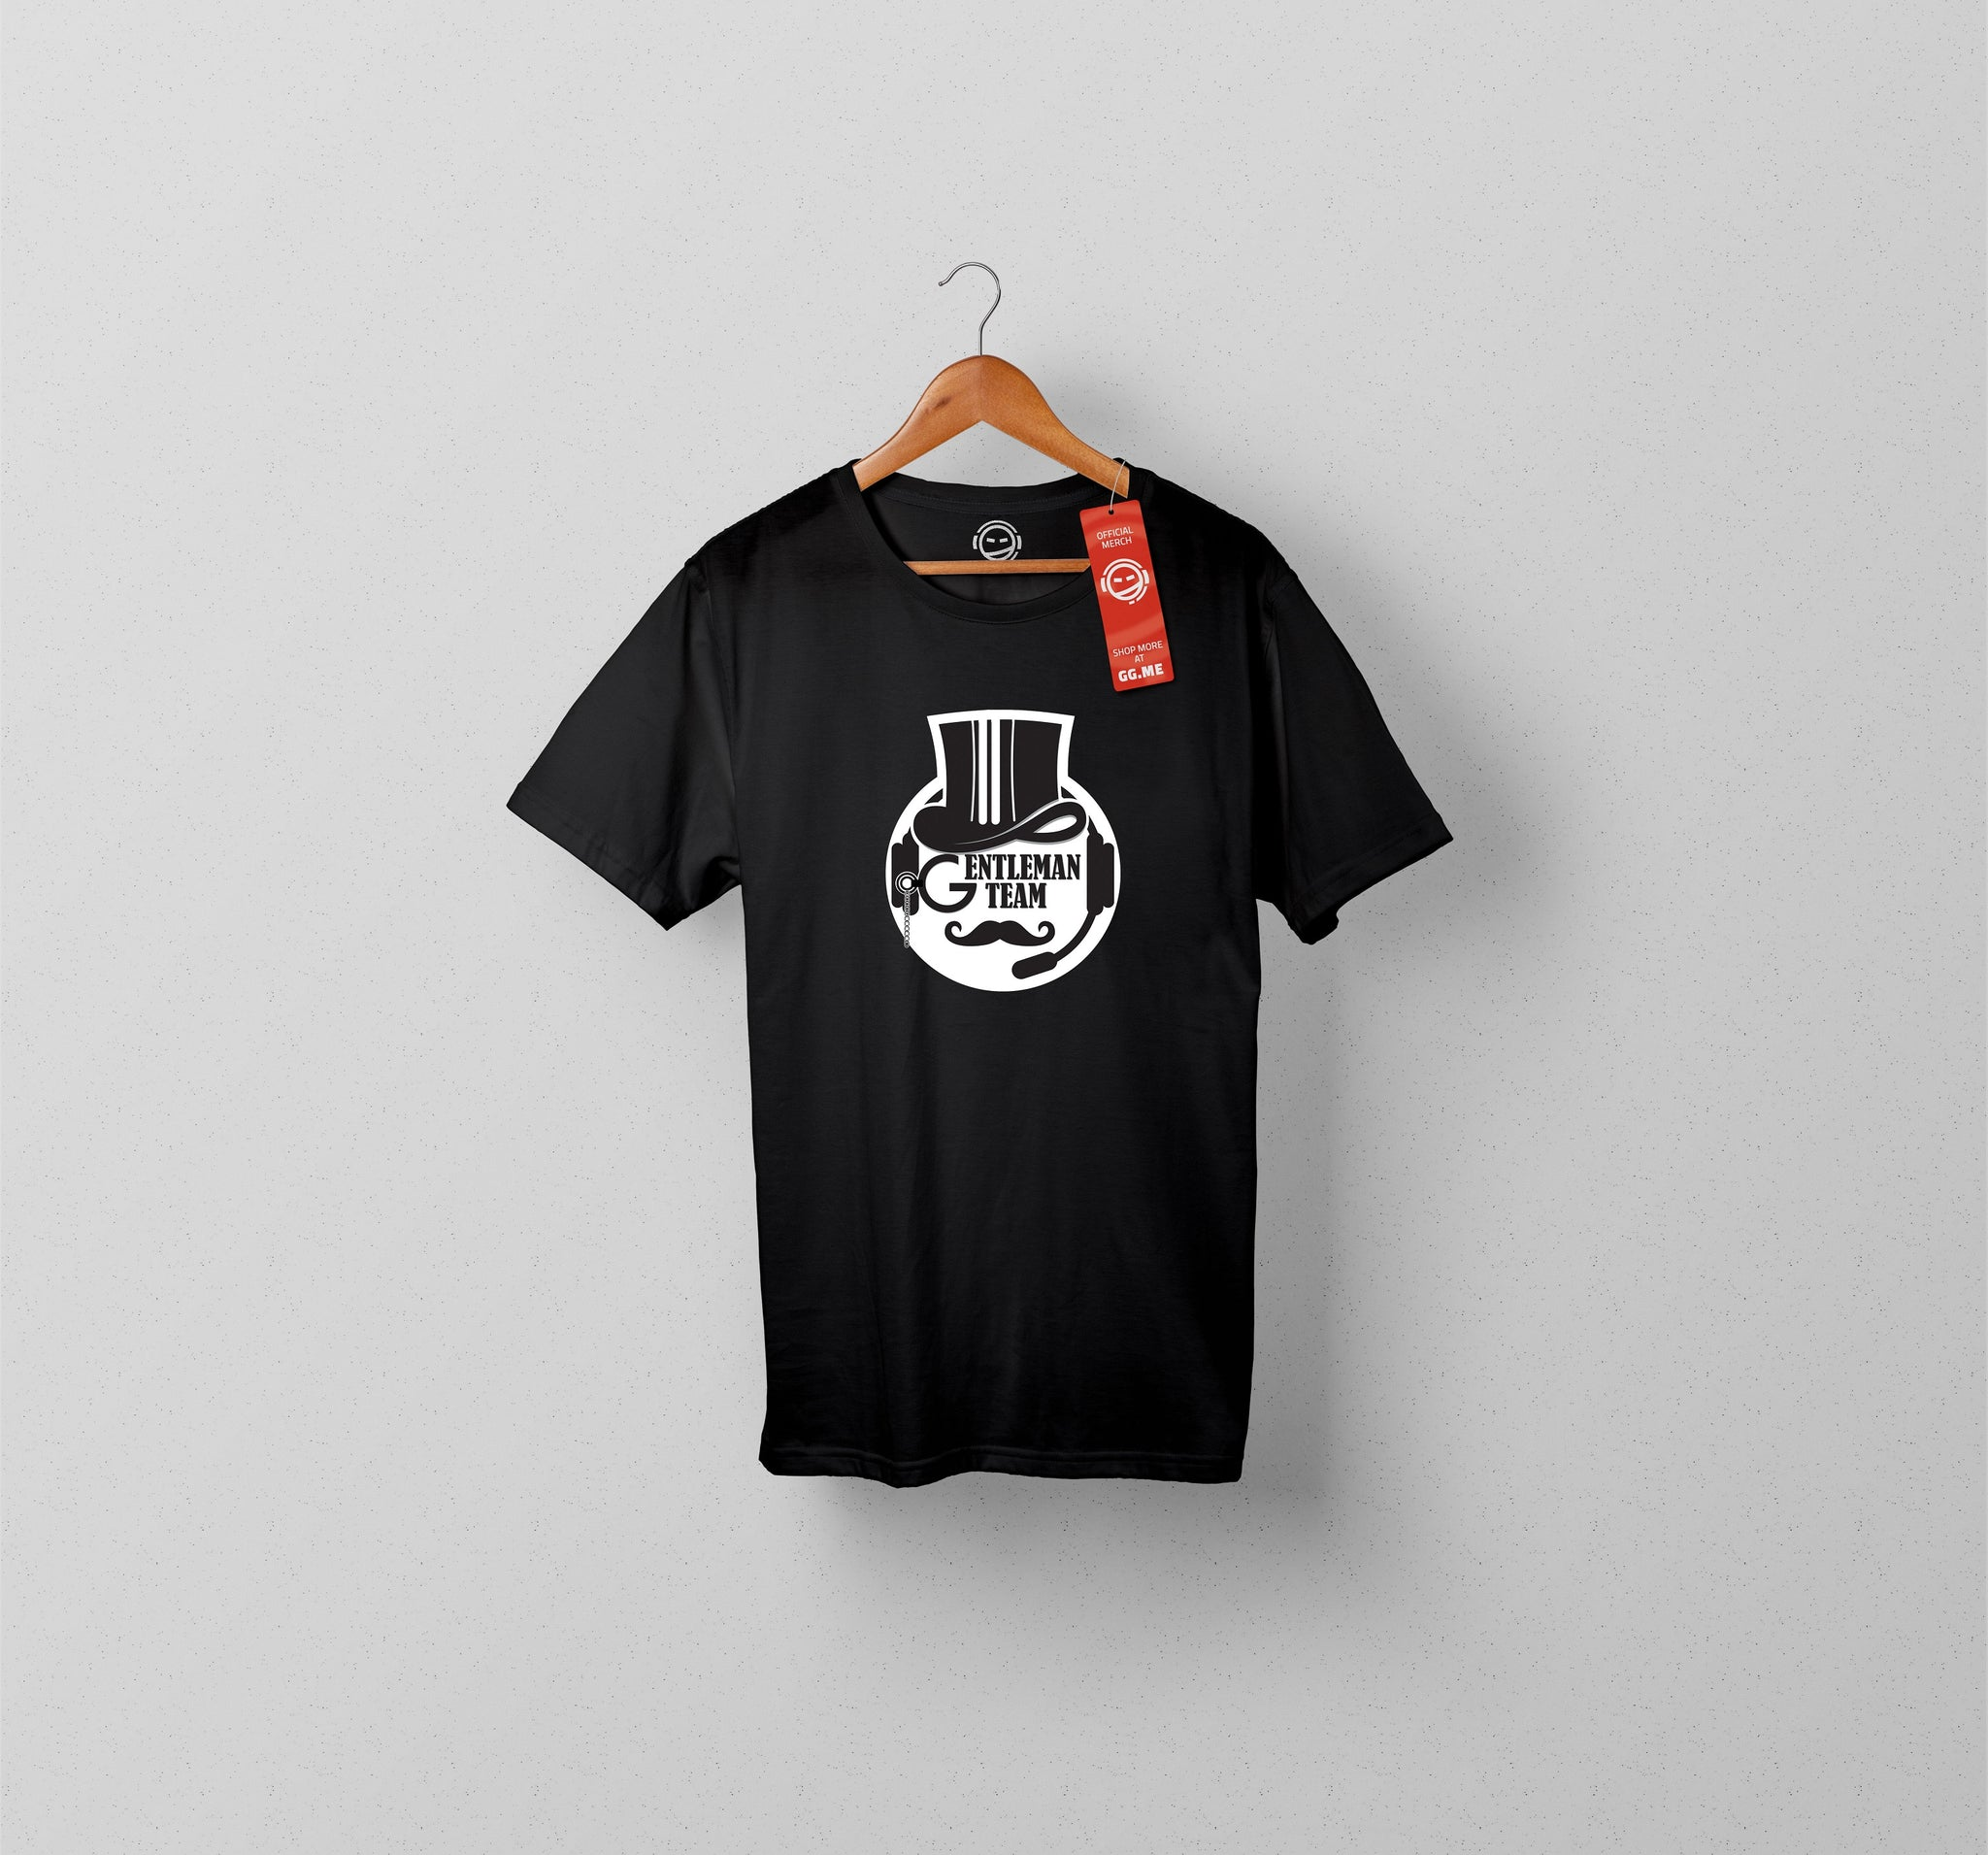 Gentleman Team Black T-shirt